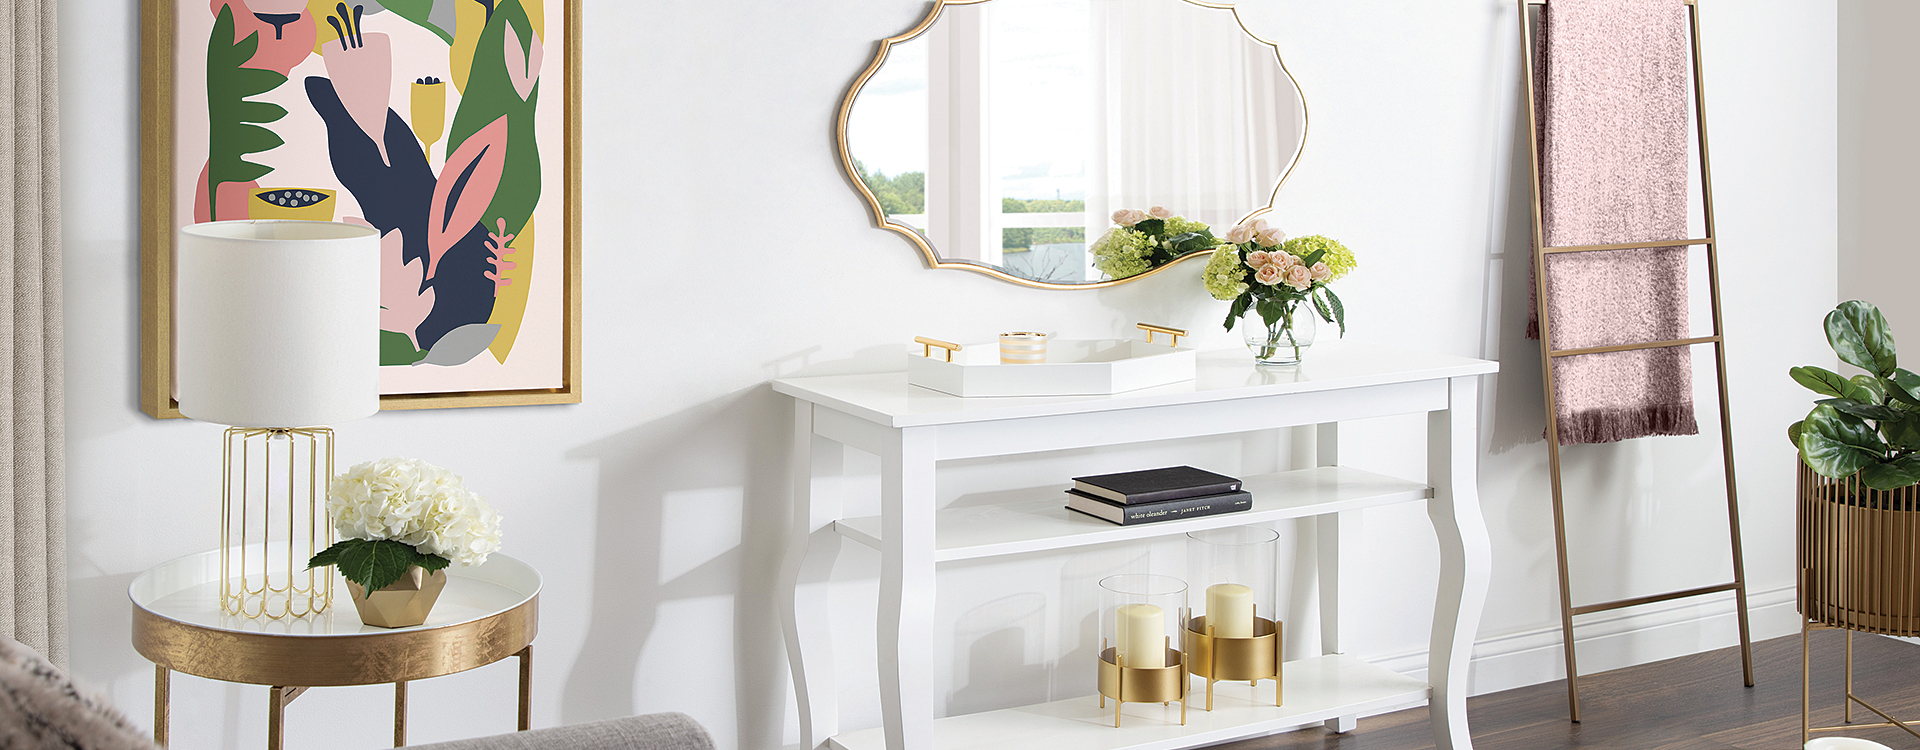 Room with white desk, mirror, and abstract art